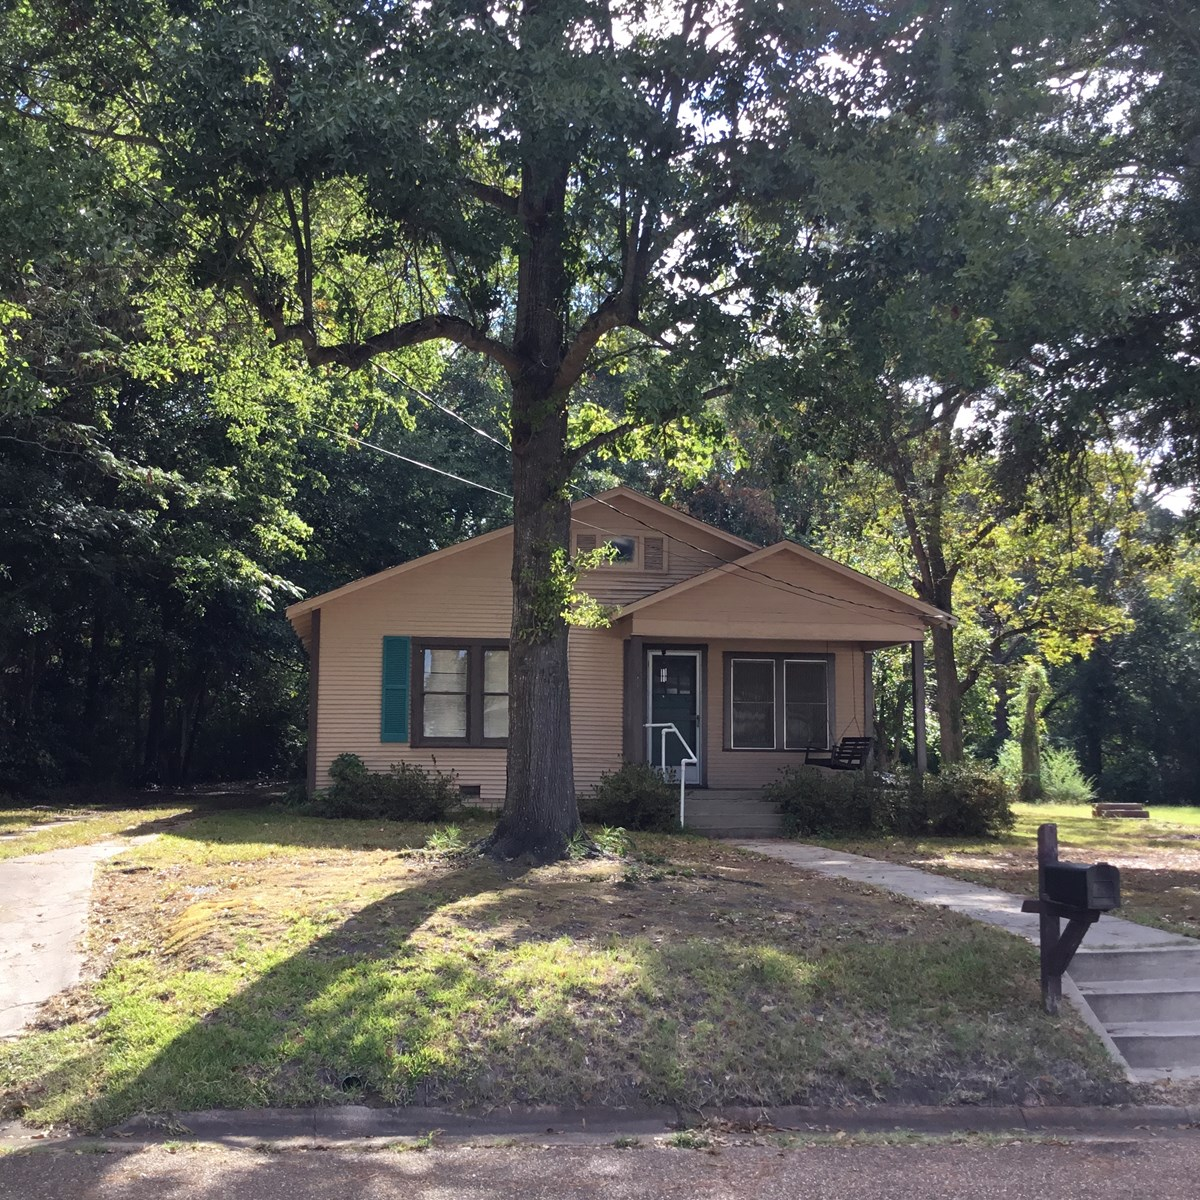 Cute Bungalow in Old Town Gilmer Texas For Sale